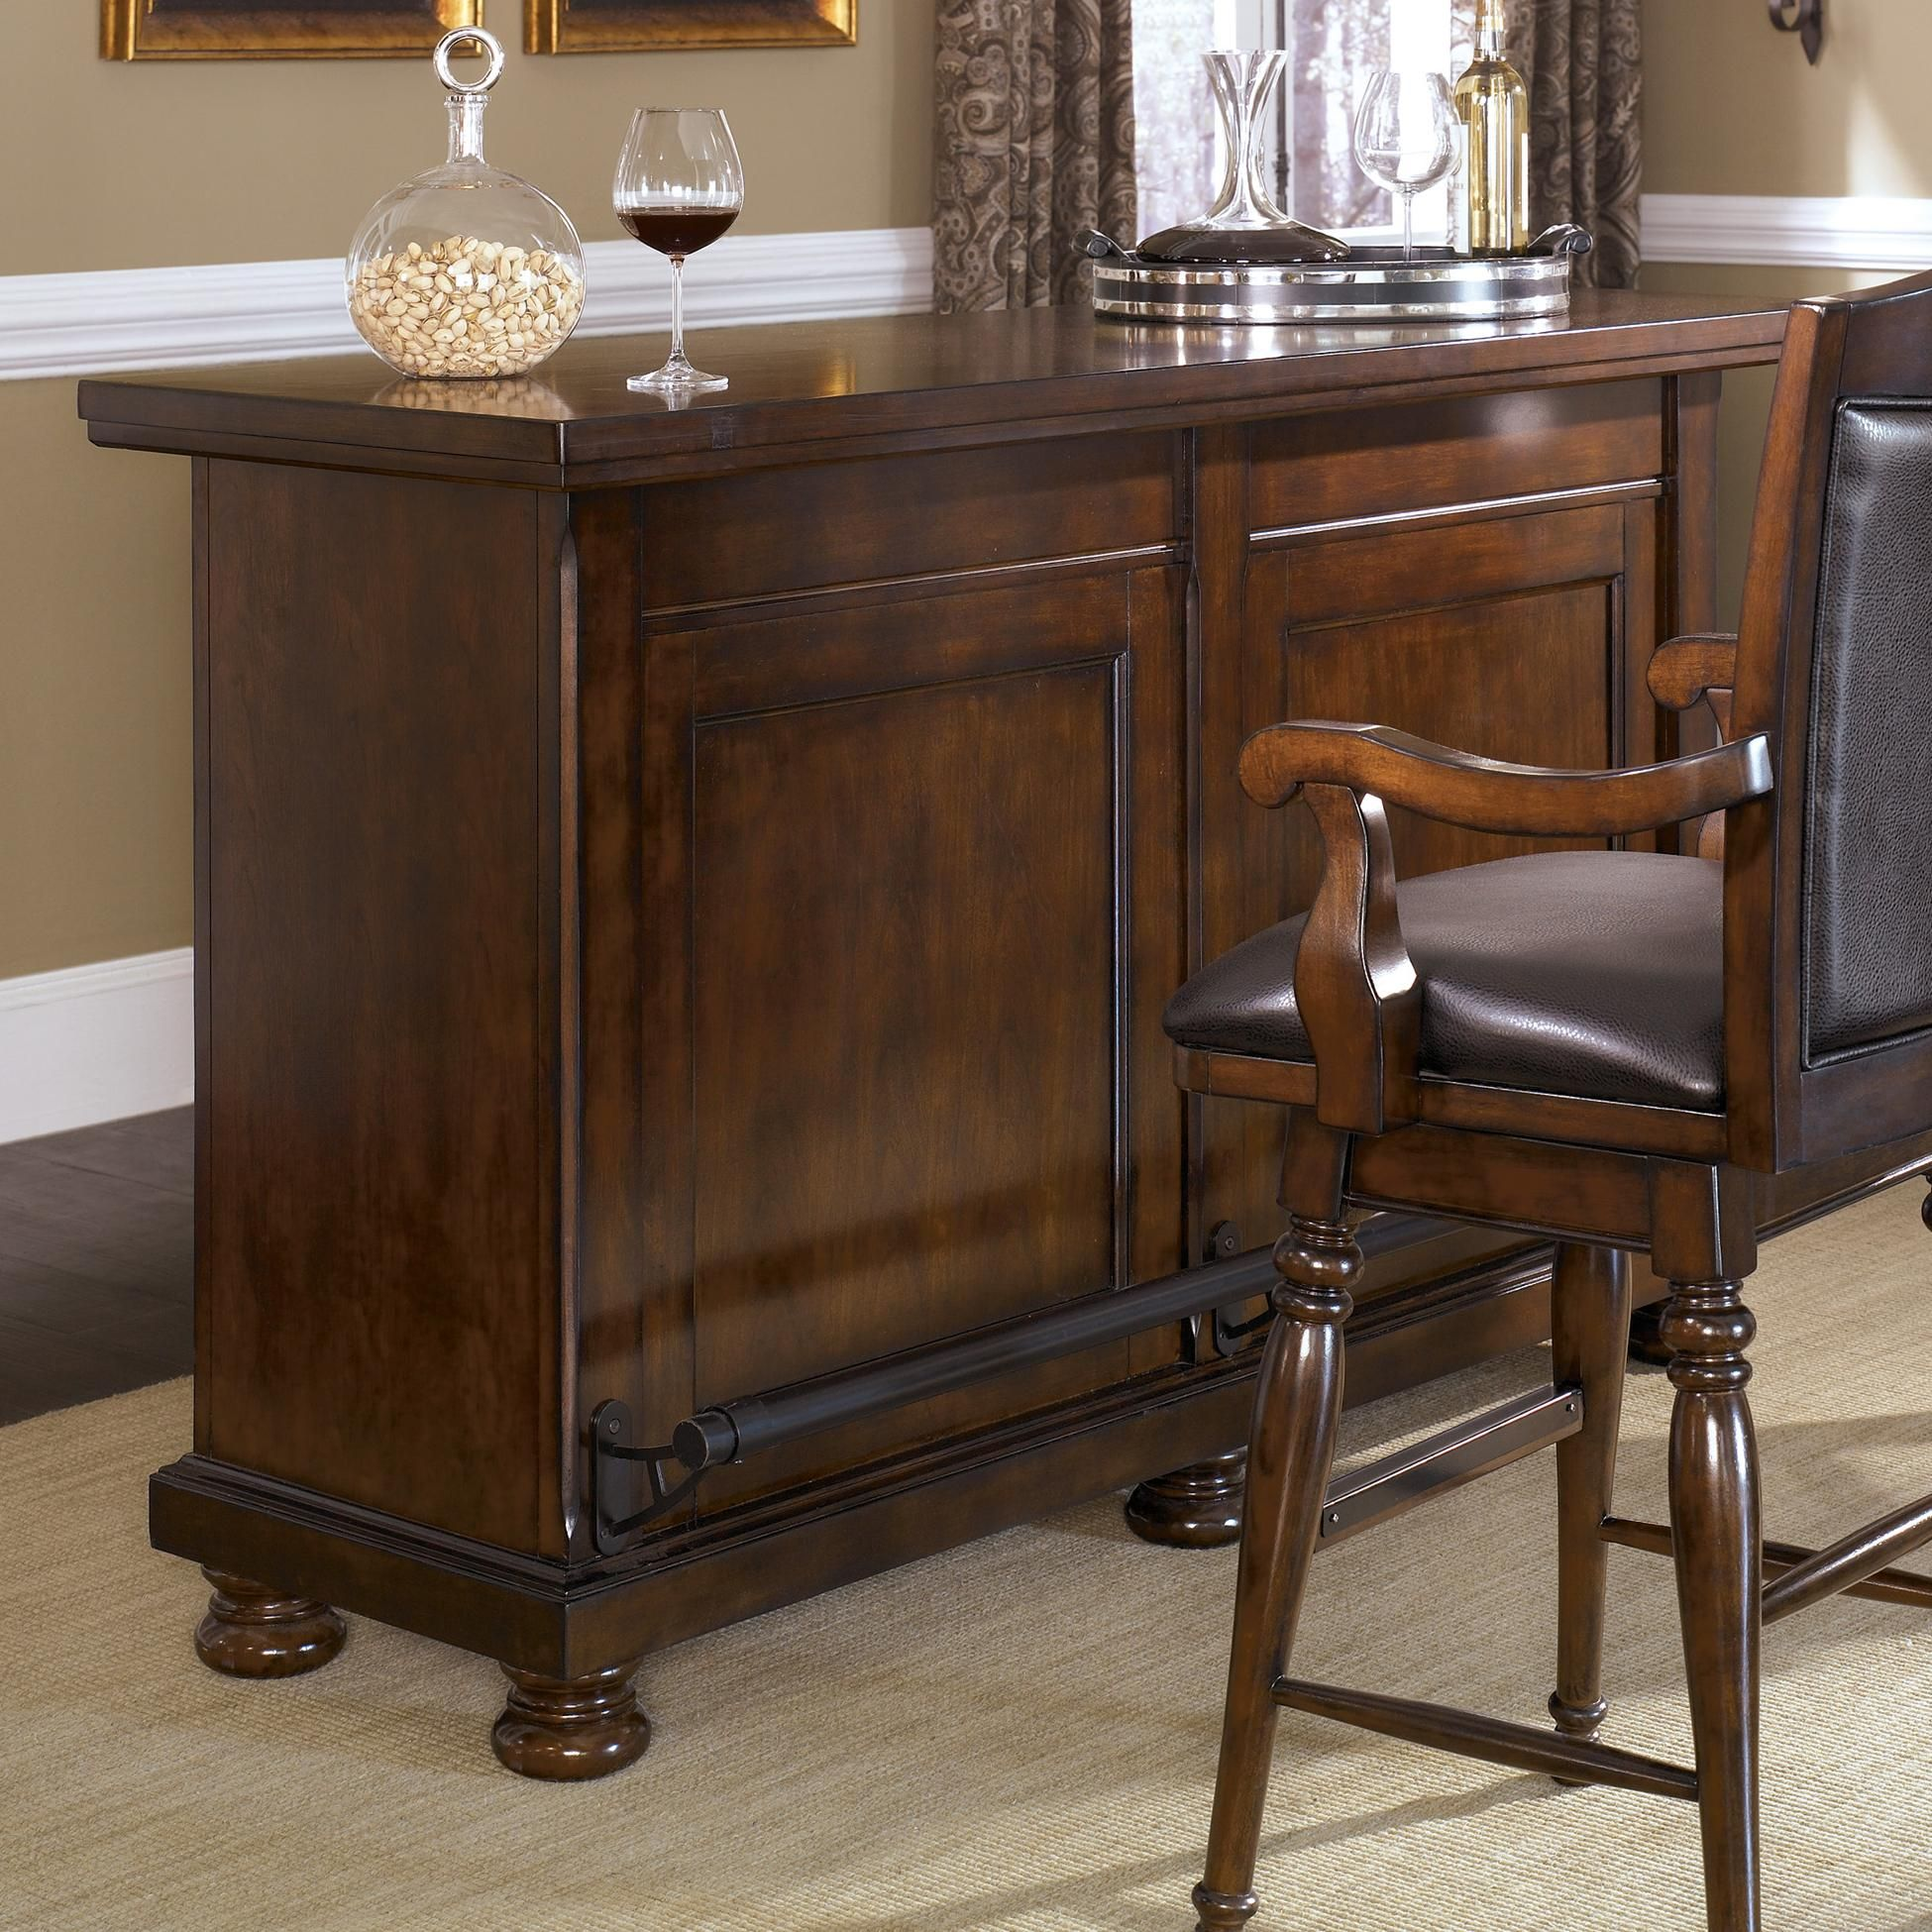 Porter Bar By Ashley Furniture At Gill Brothers Furniture Muncie  # Muebles Humanos